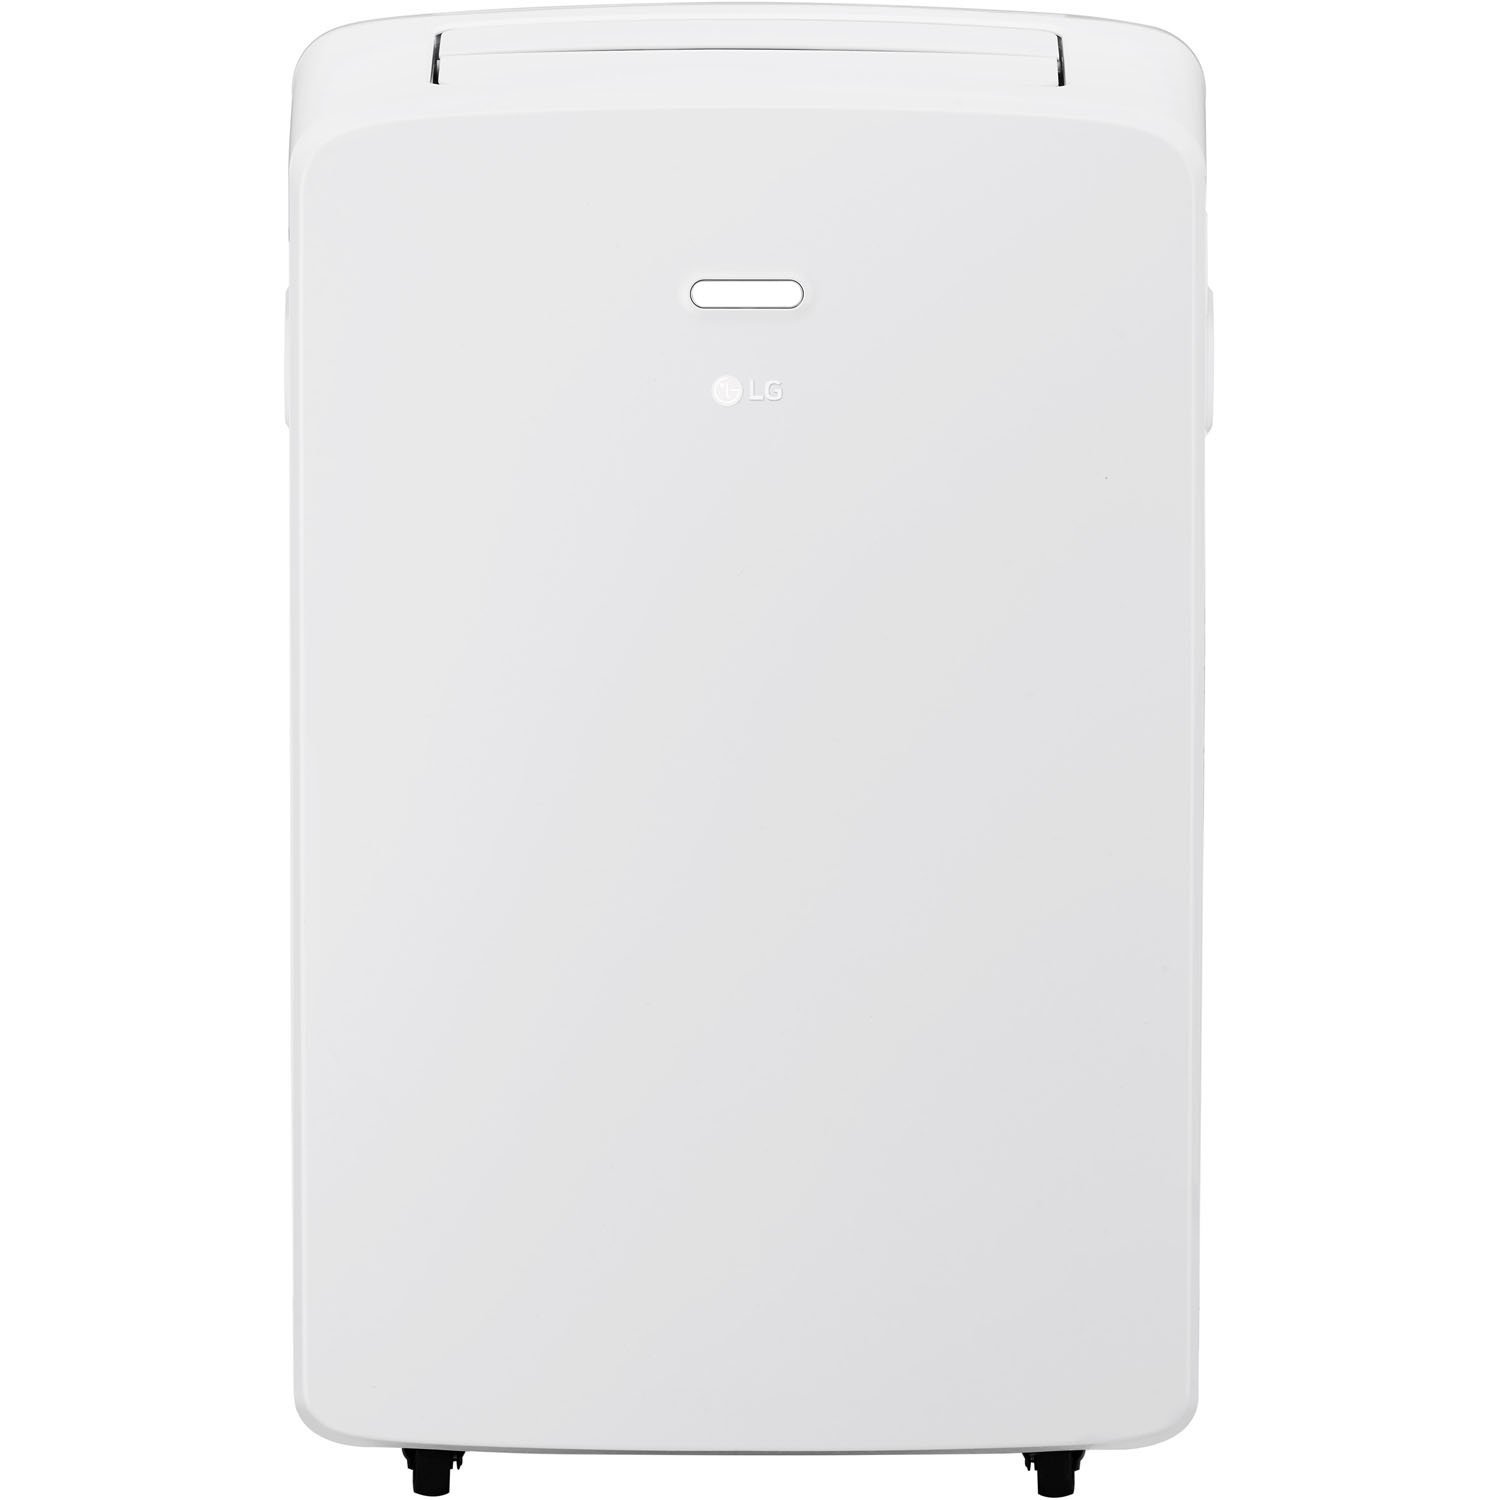 LG 10,200 BTU 115-Volt Portable Air Conditioner with Remote, Factory Reconditioned